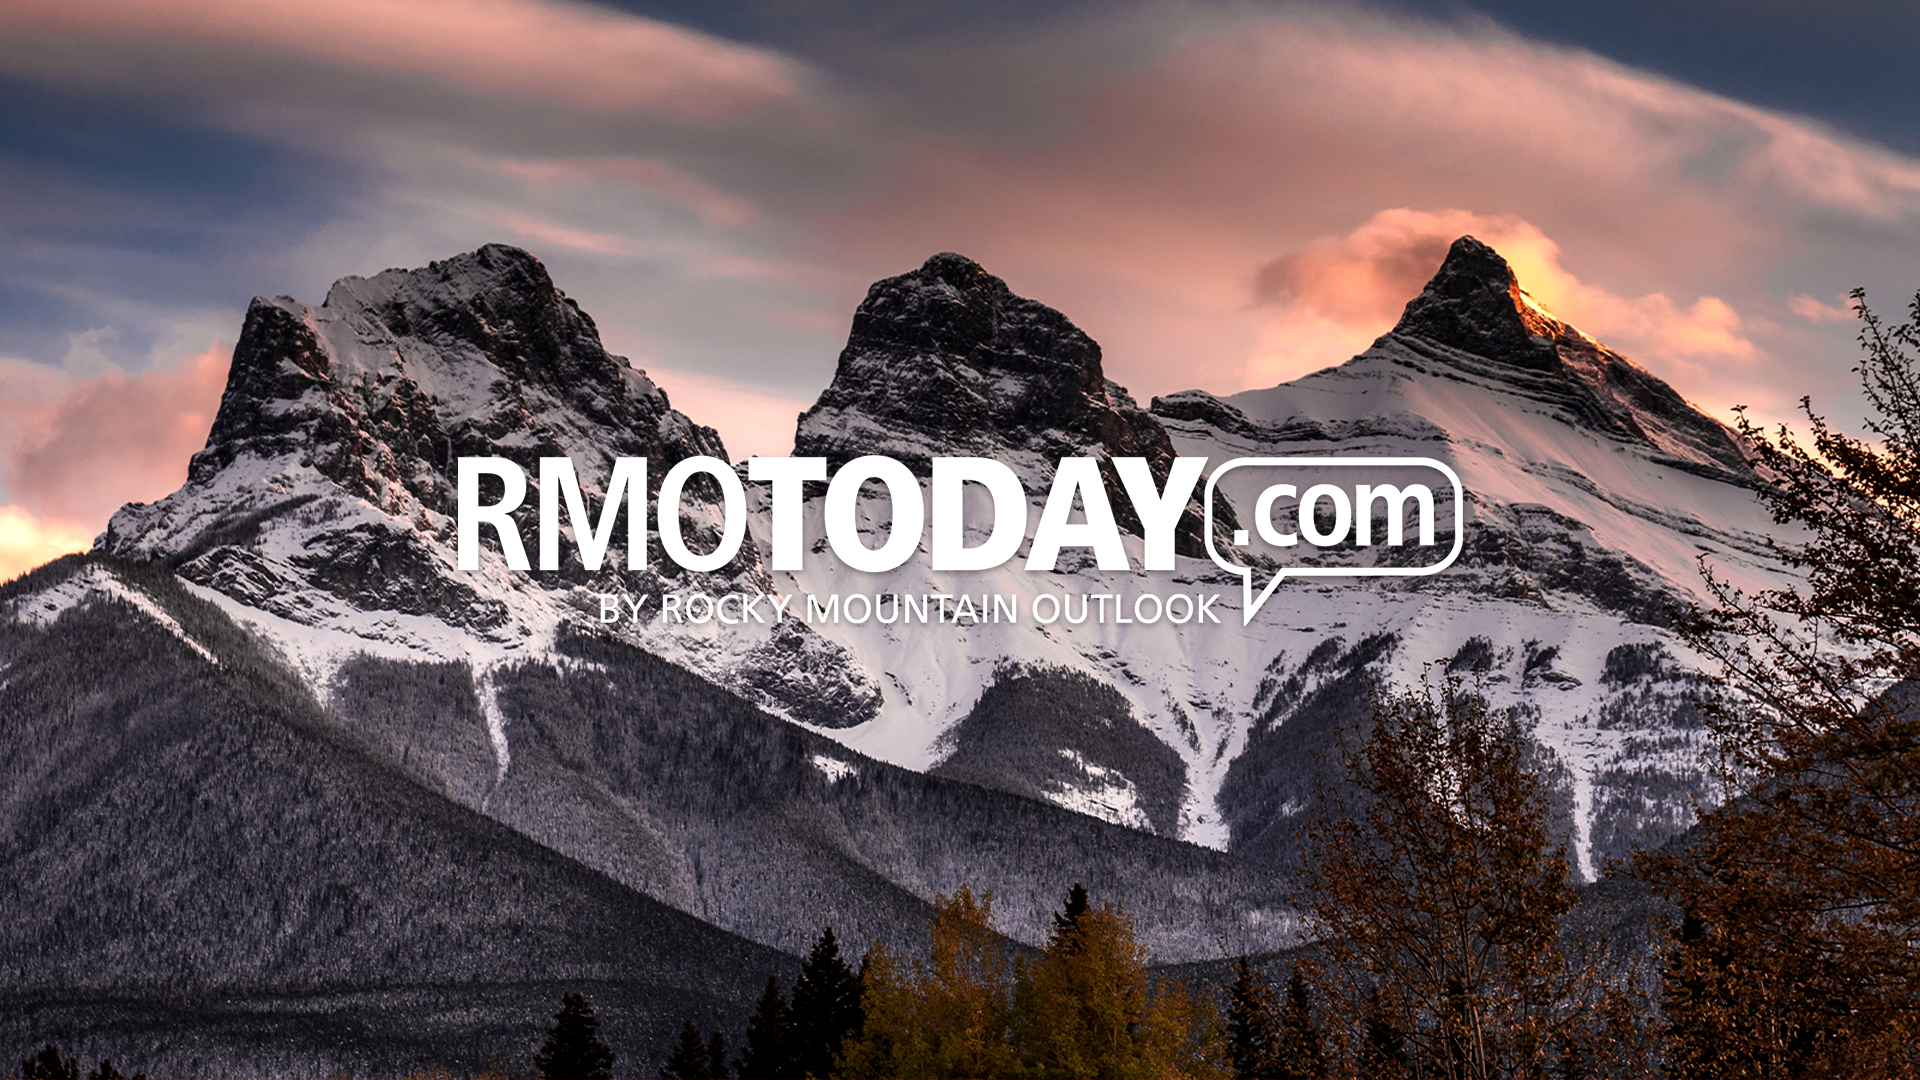 Bow Valley News - Powered by Rocky Mountain Outlook - RMOToday com